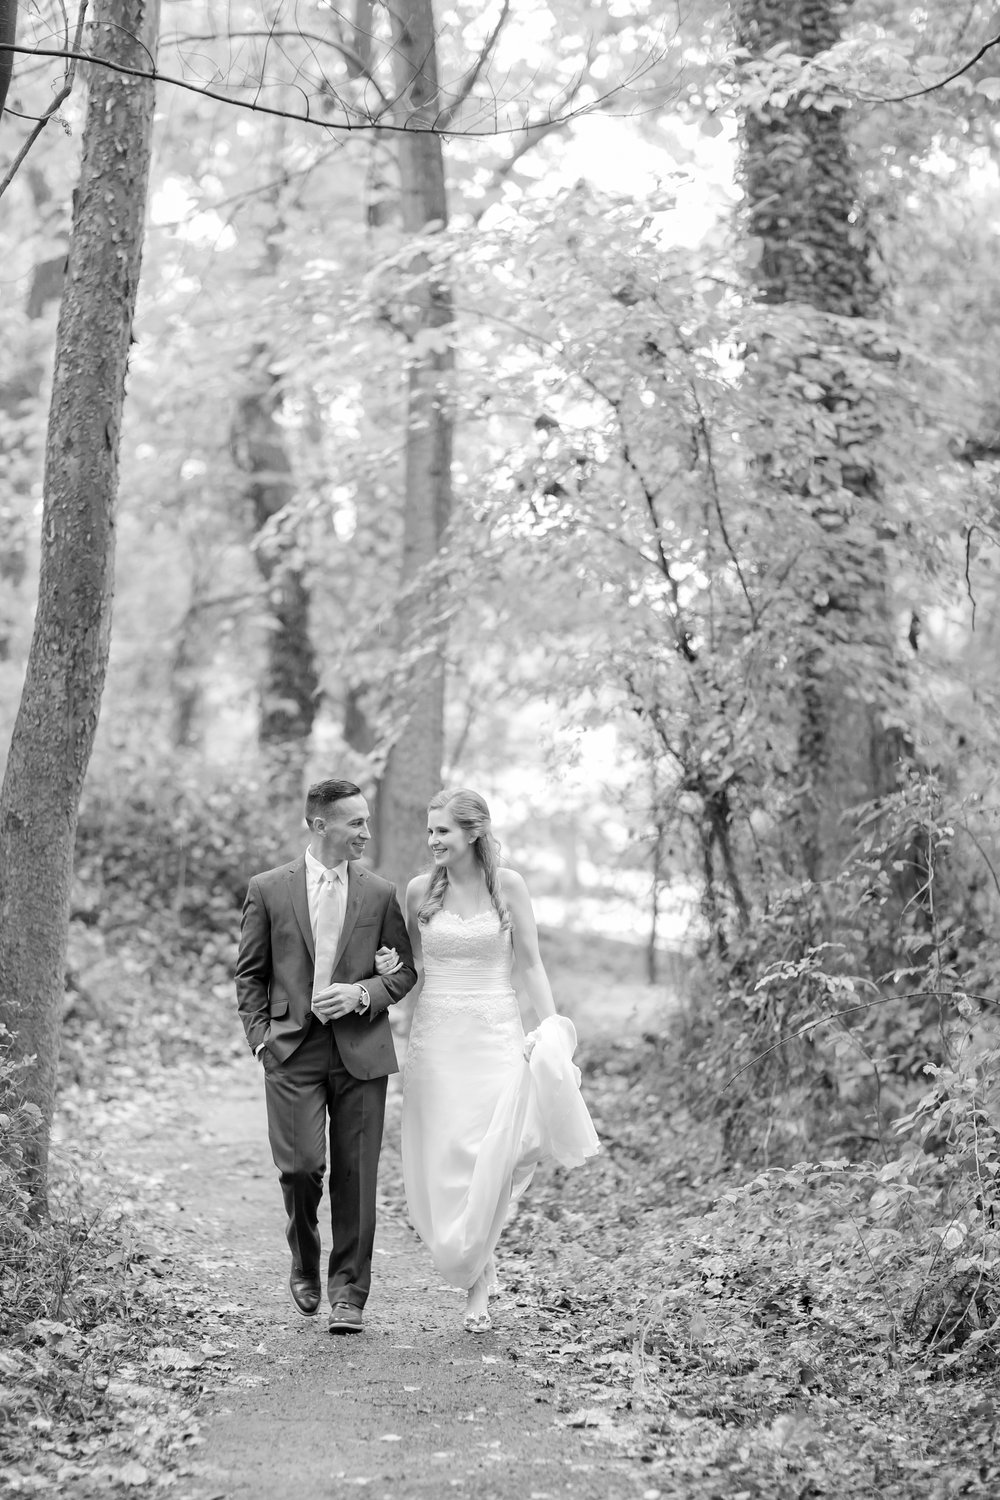 Martin 3-Bride & Groom Portraits-957_anna grace photography virginia wedding photographer old town alexandria athenaeum wedding photo.jpg